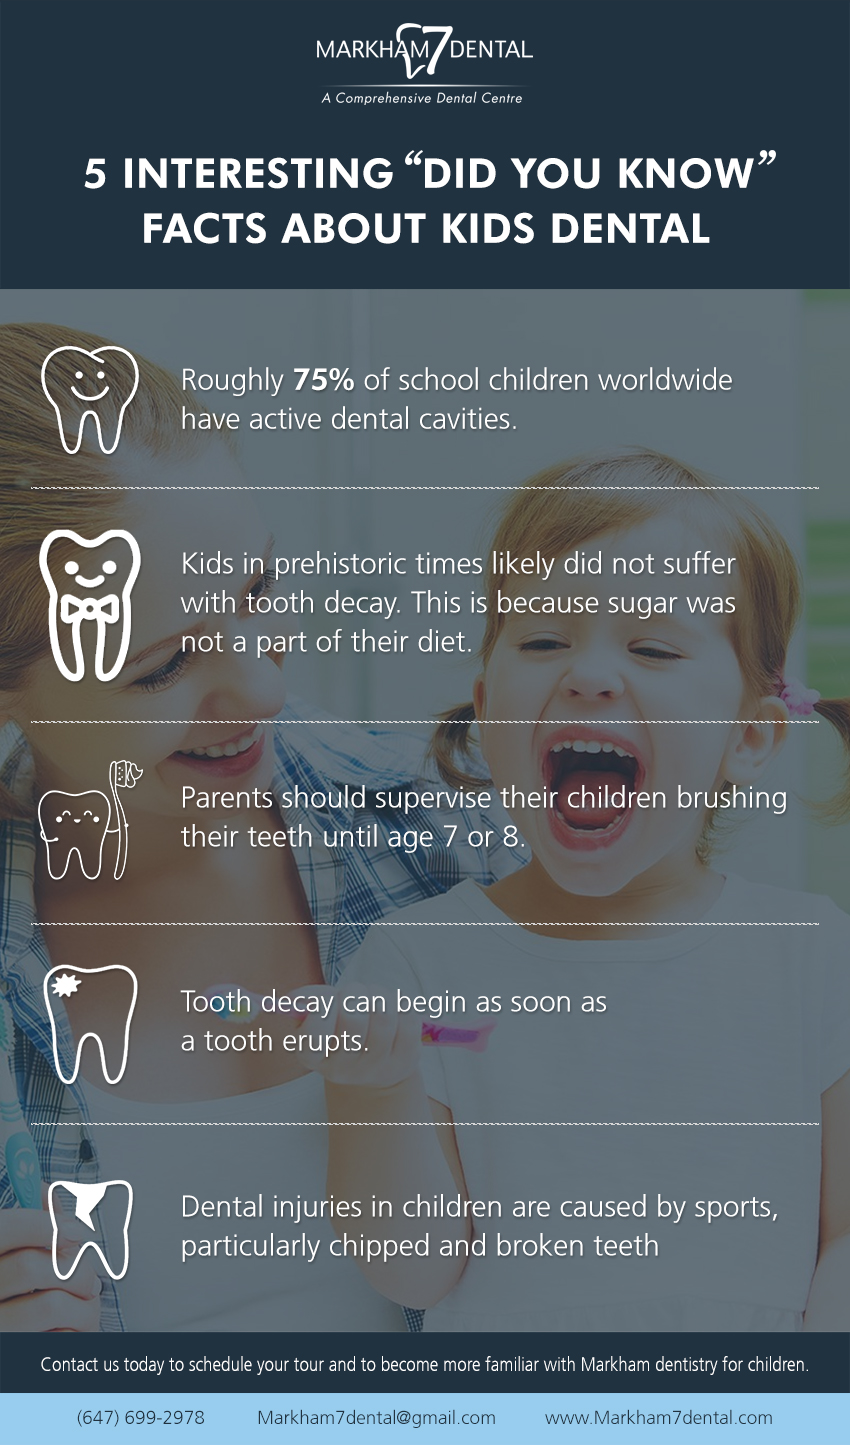 5 Interesting Did You Know Facts About Kids Dental